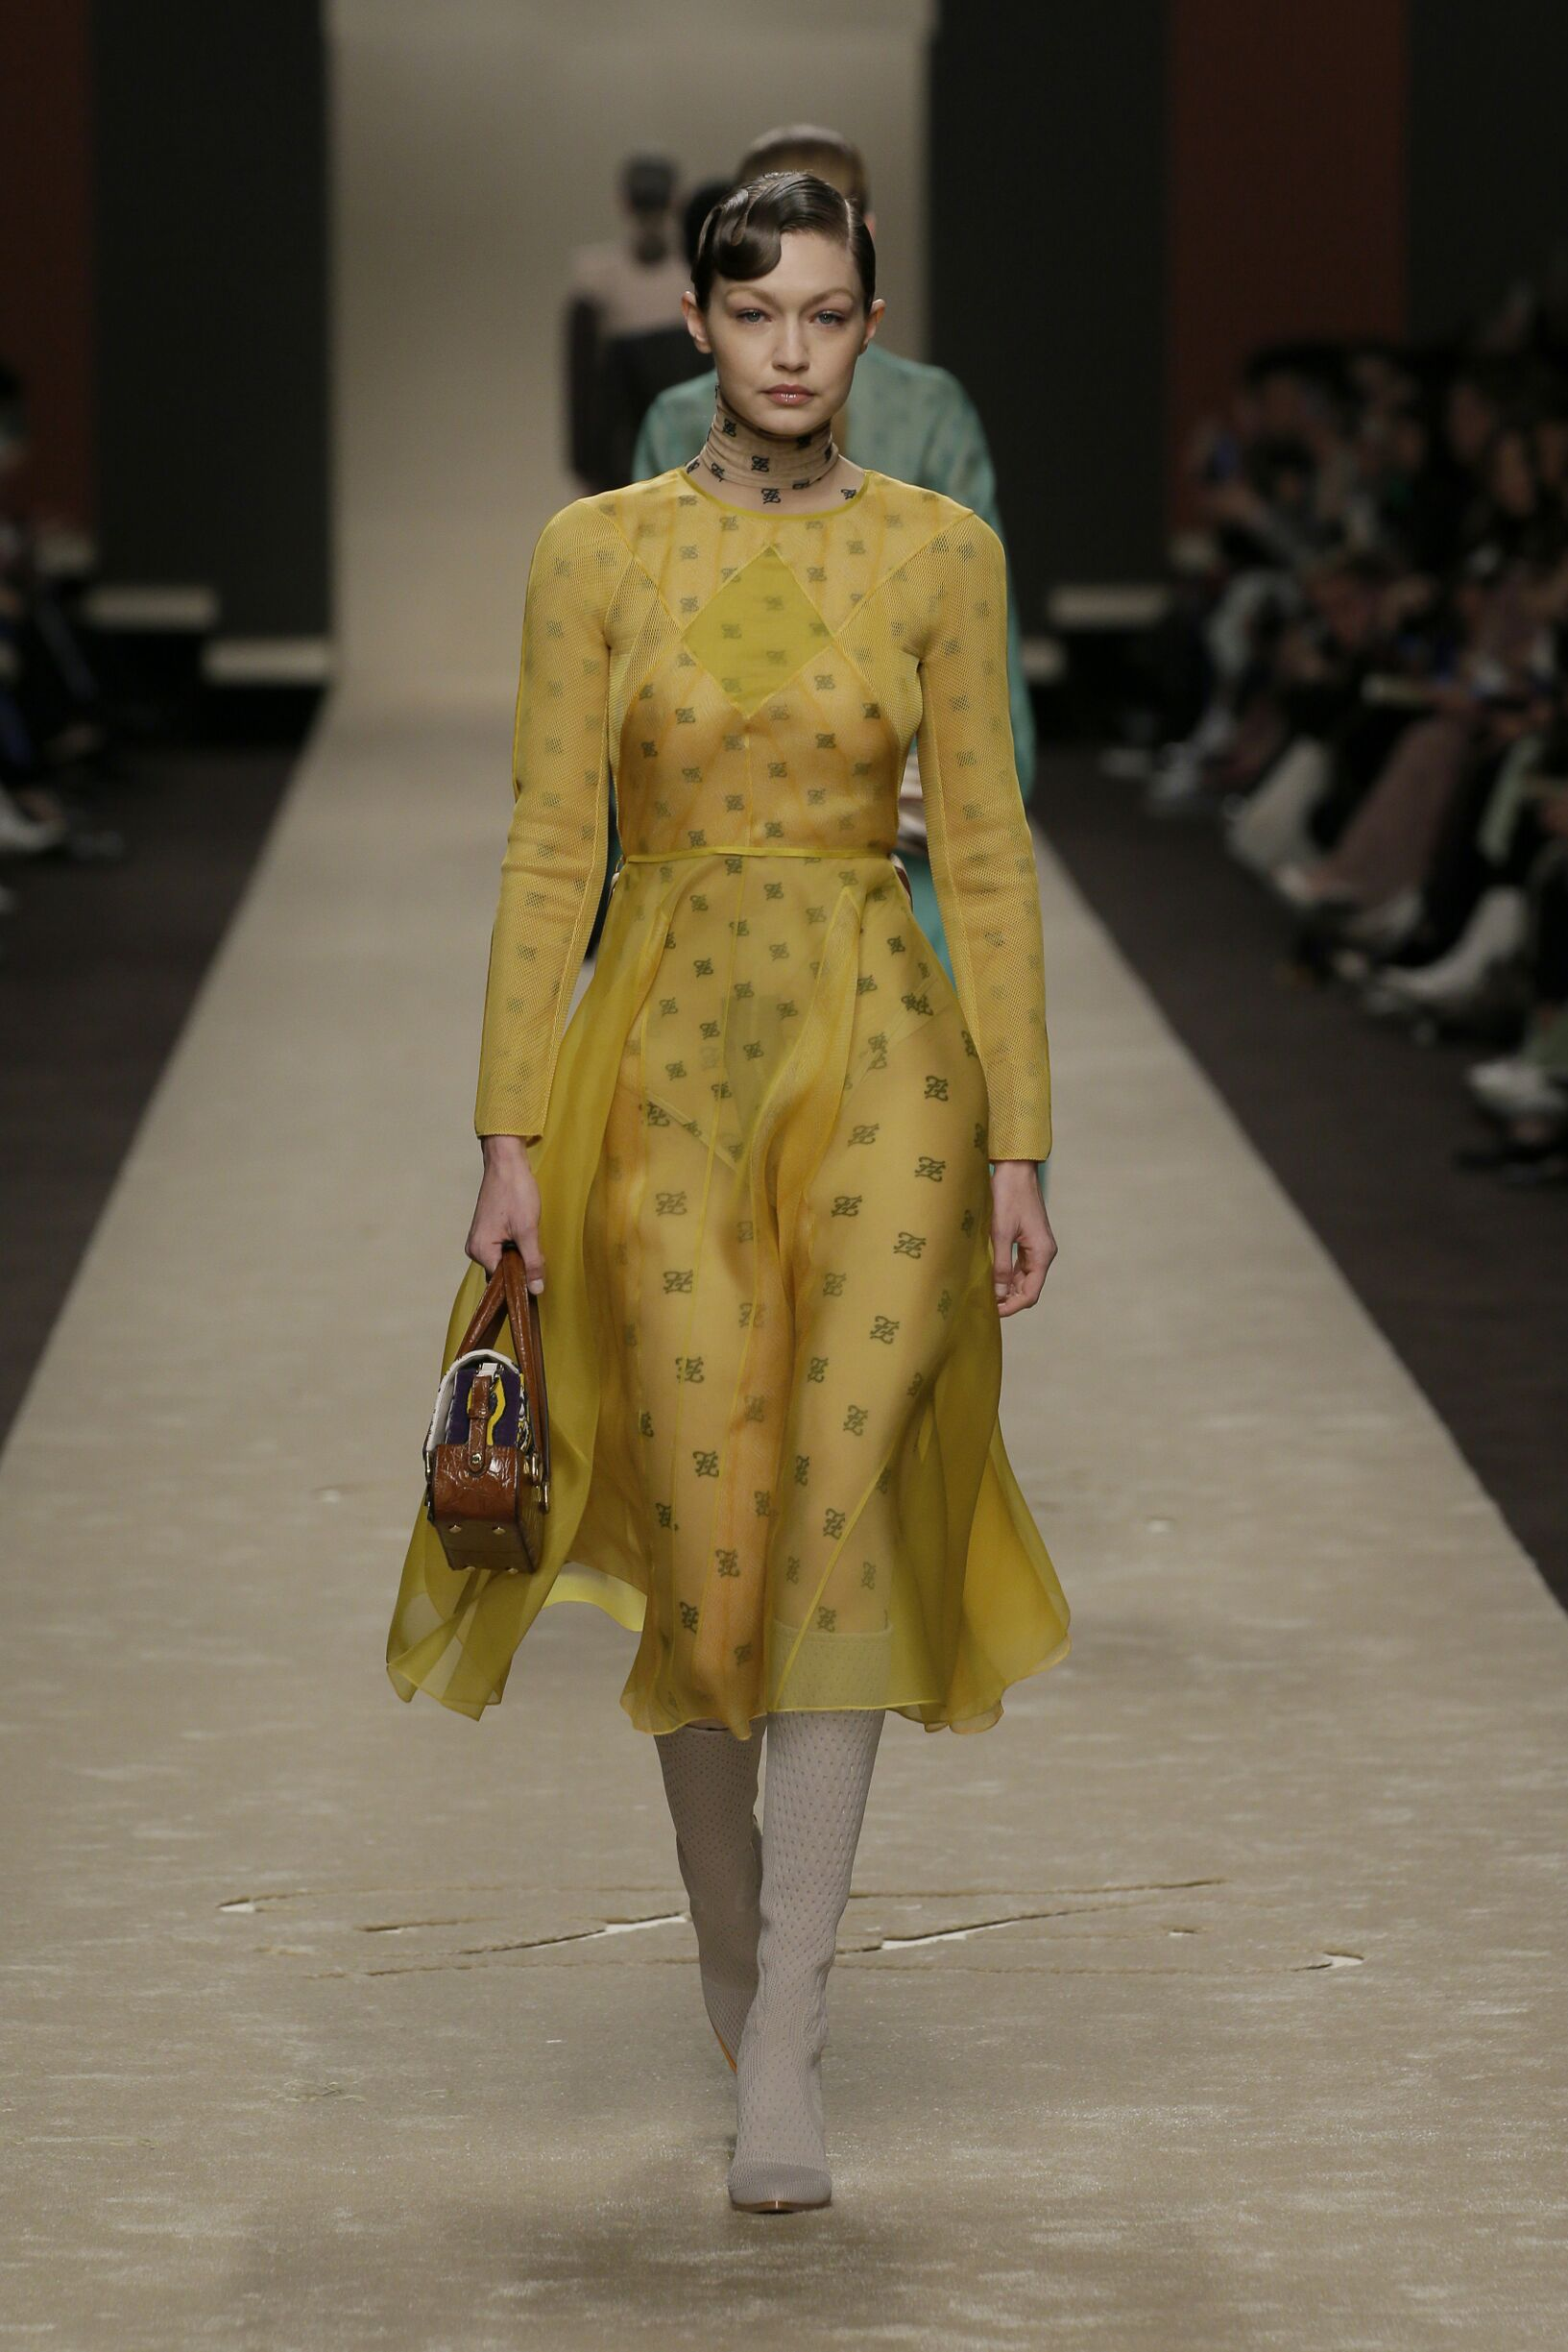 Womenswear Winter Fendi 2019